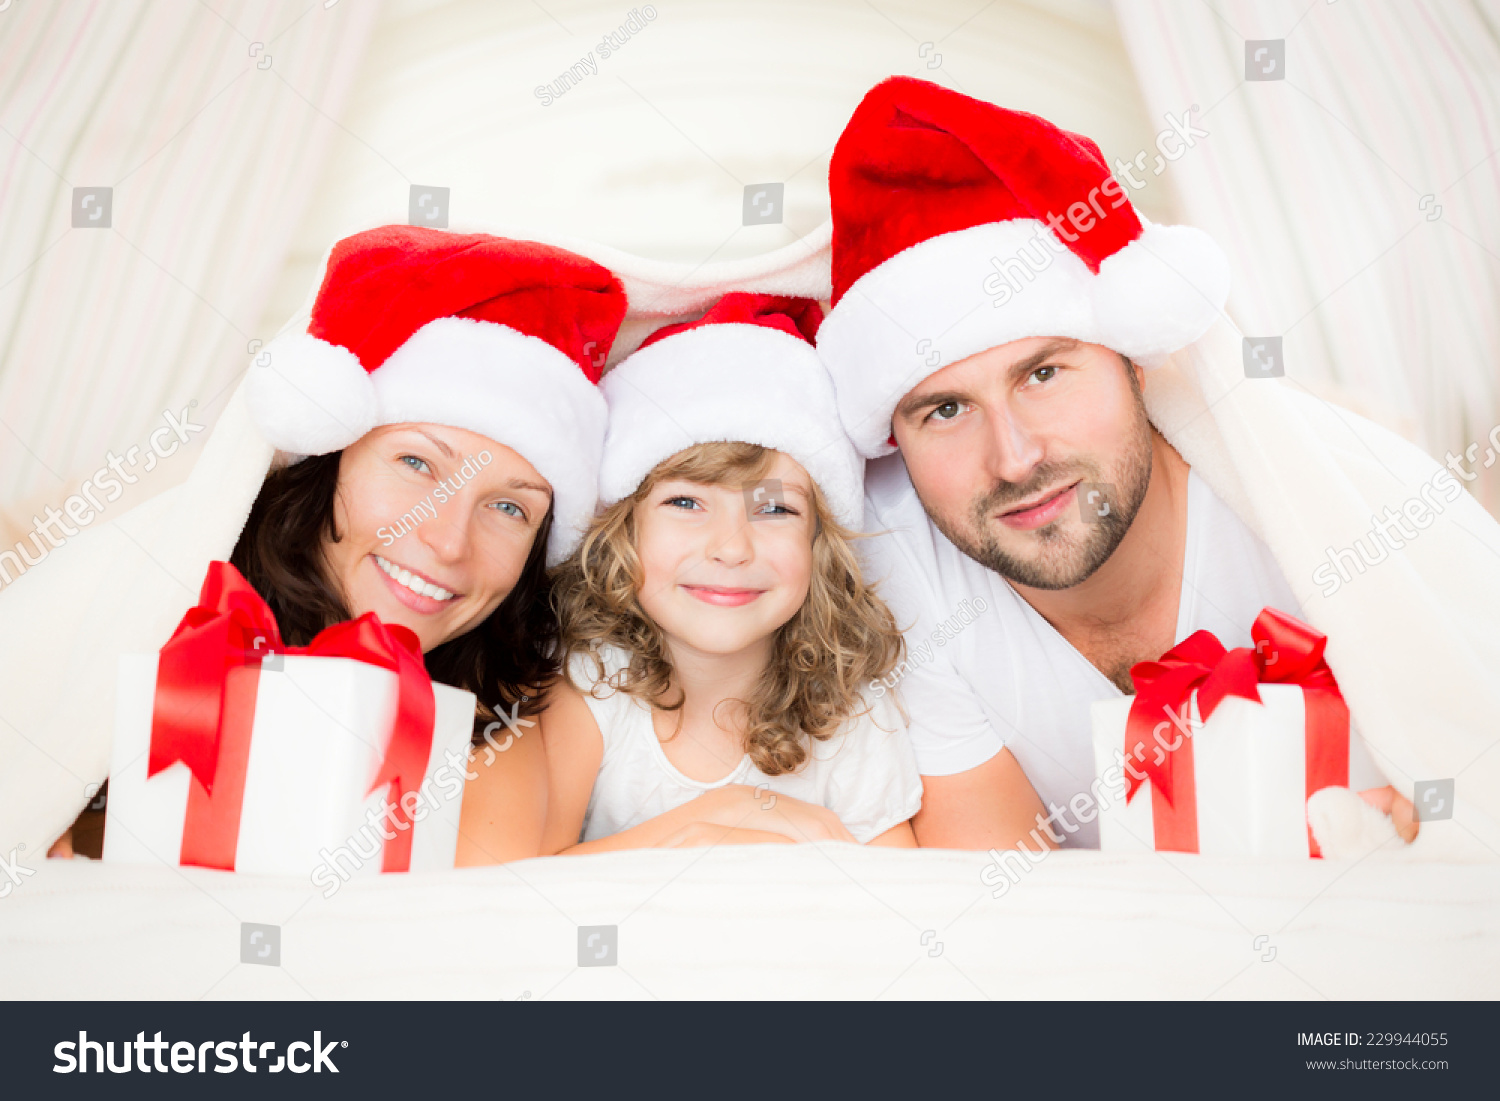 Happy Family With Christmas Gift Xmas Holiday Concept